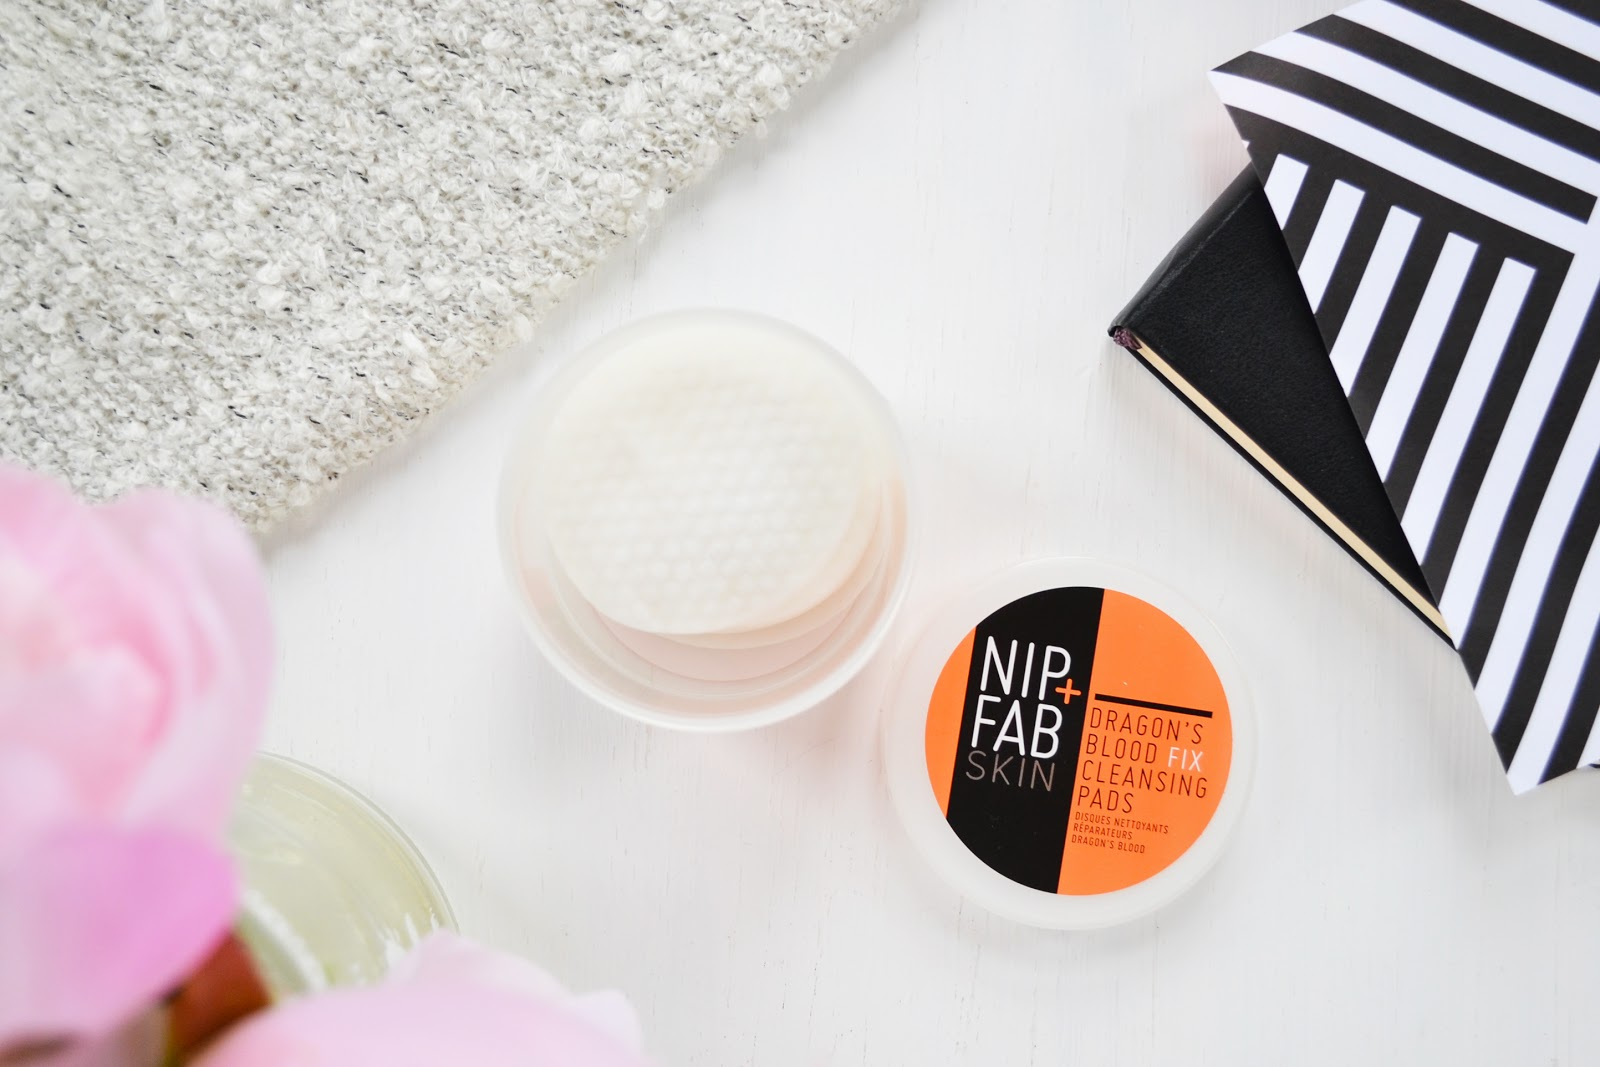 nip and fab dragon's blood cleansing pads